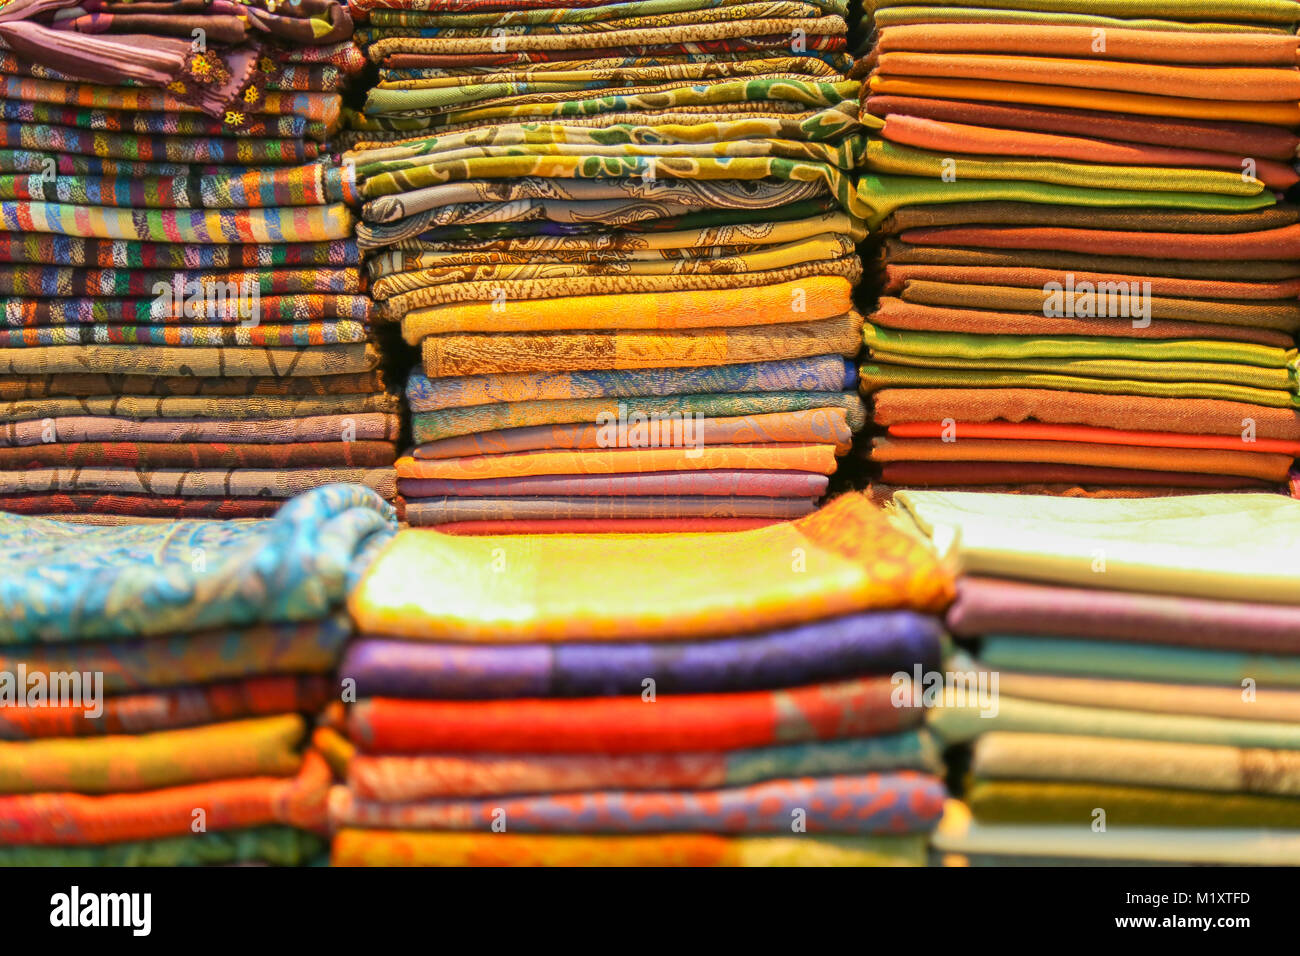 Stacked colorful Turbans for headwear, shallow depth of field - Stock Image